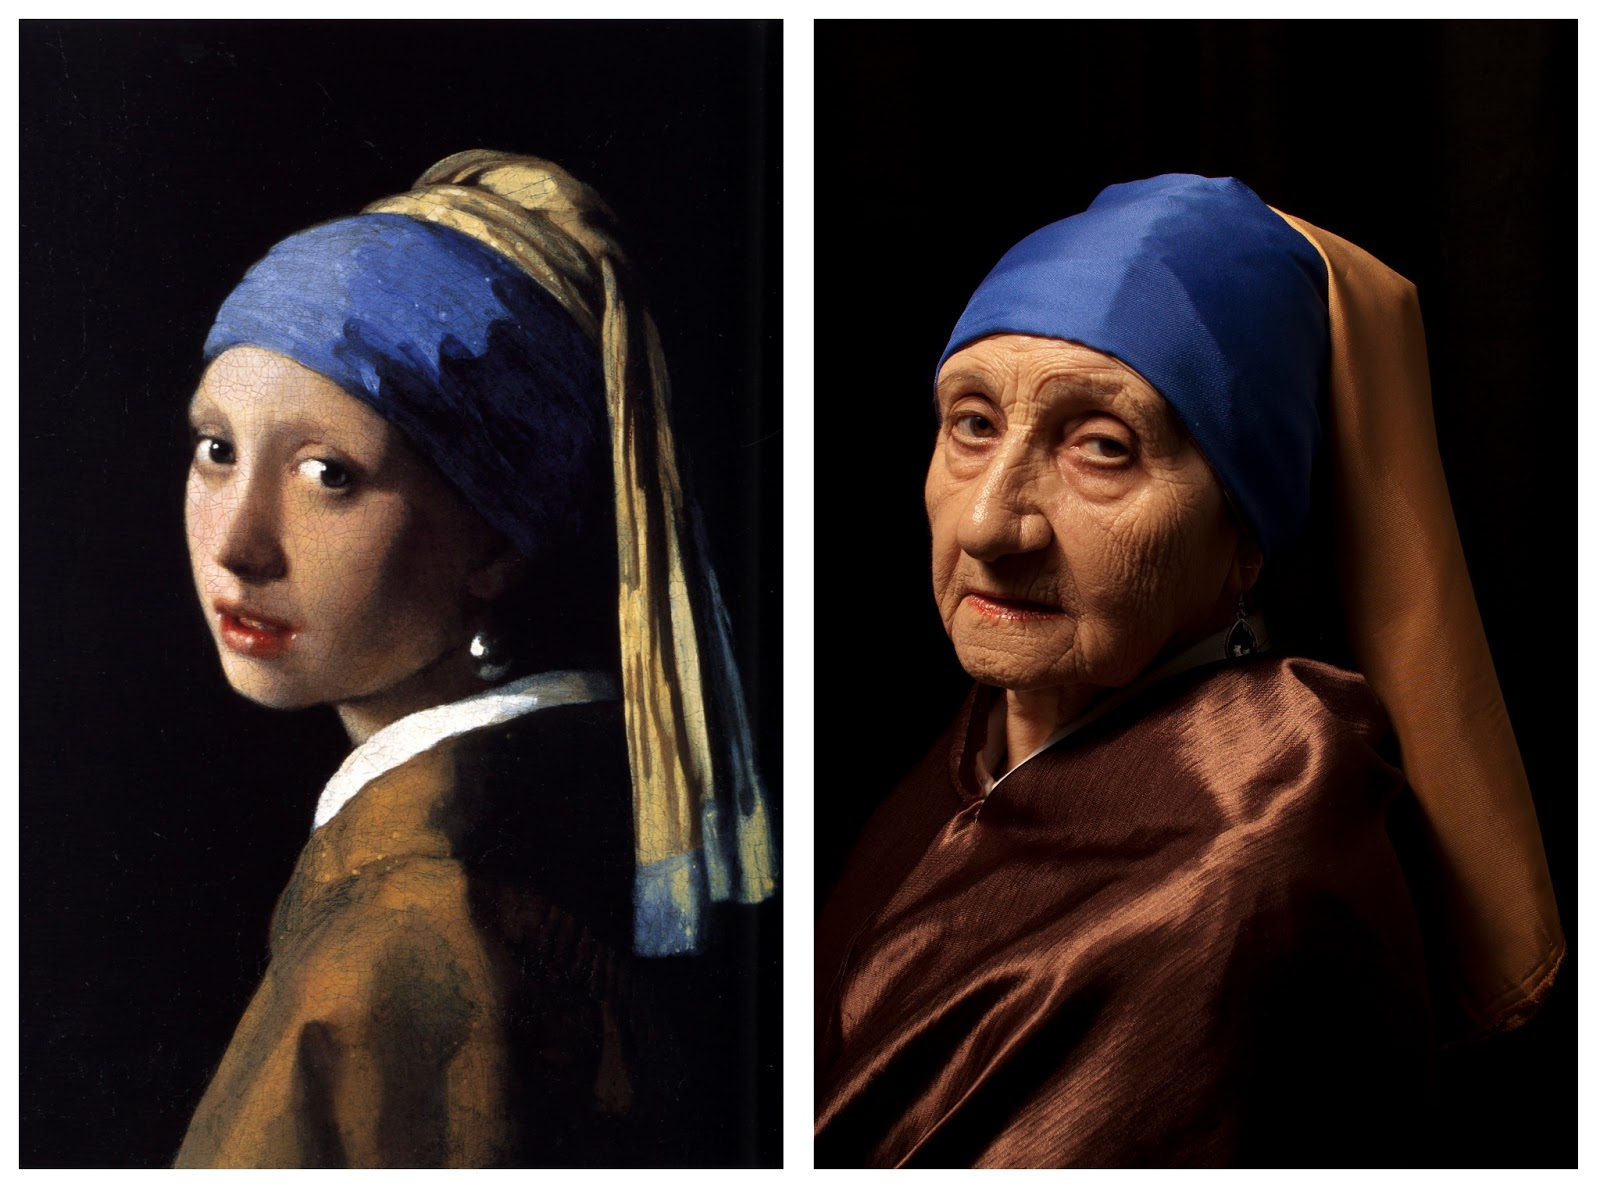 B2R Photography: Girl with a Pearl Earring - Appropriation A Girl With A Pearl Earring